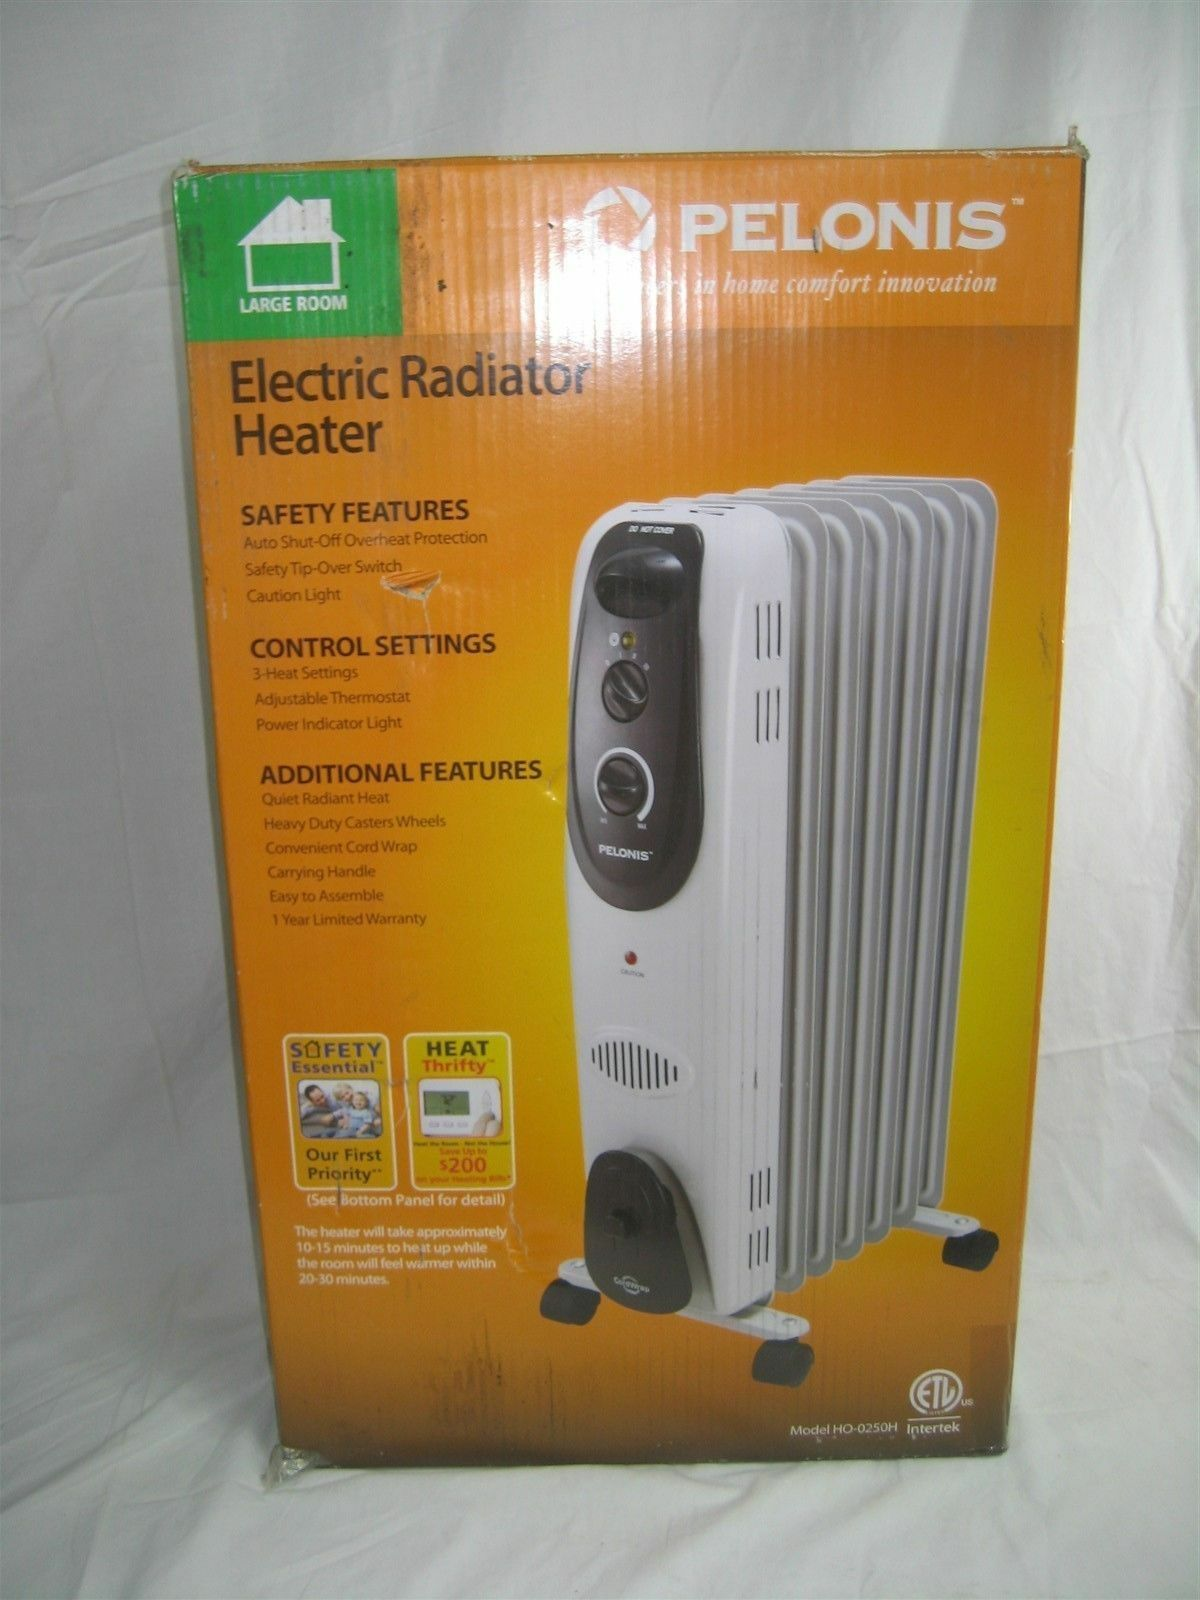 Pelonis Large Home Electric Radiator Heater 125 Amps White Ho 0250h Portable Baseboard Heaters As Well Small With Ebay